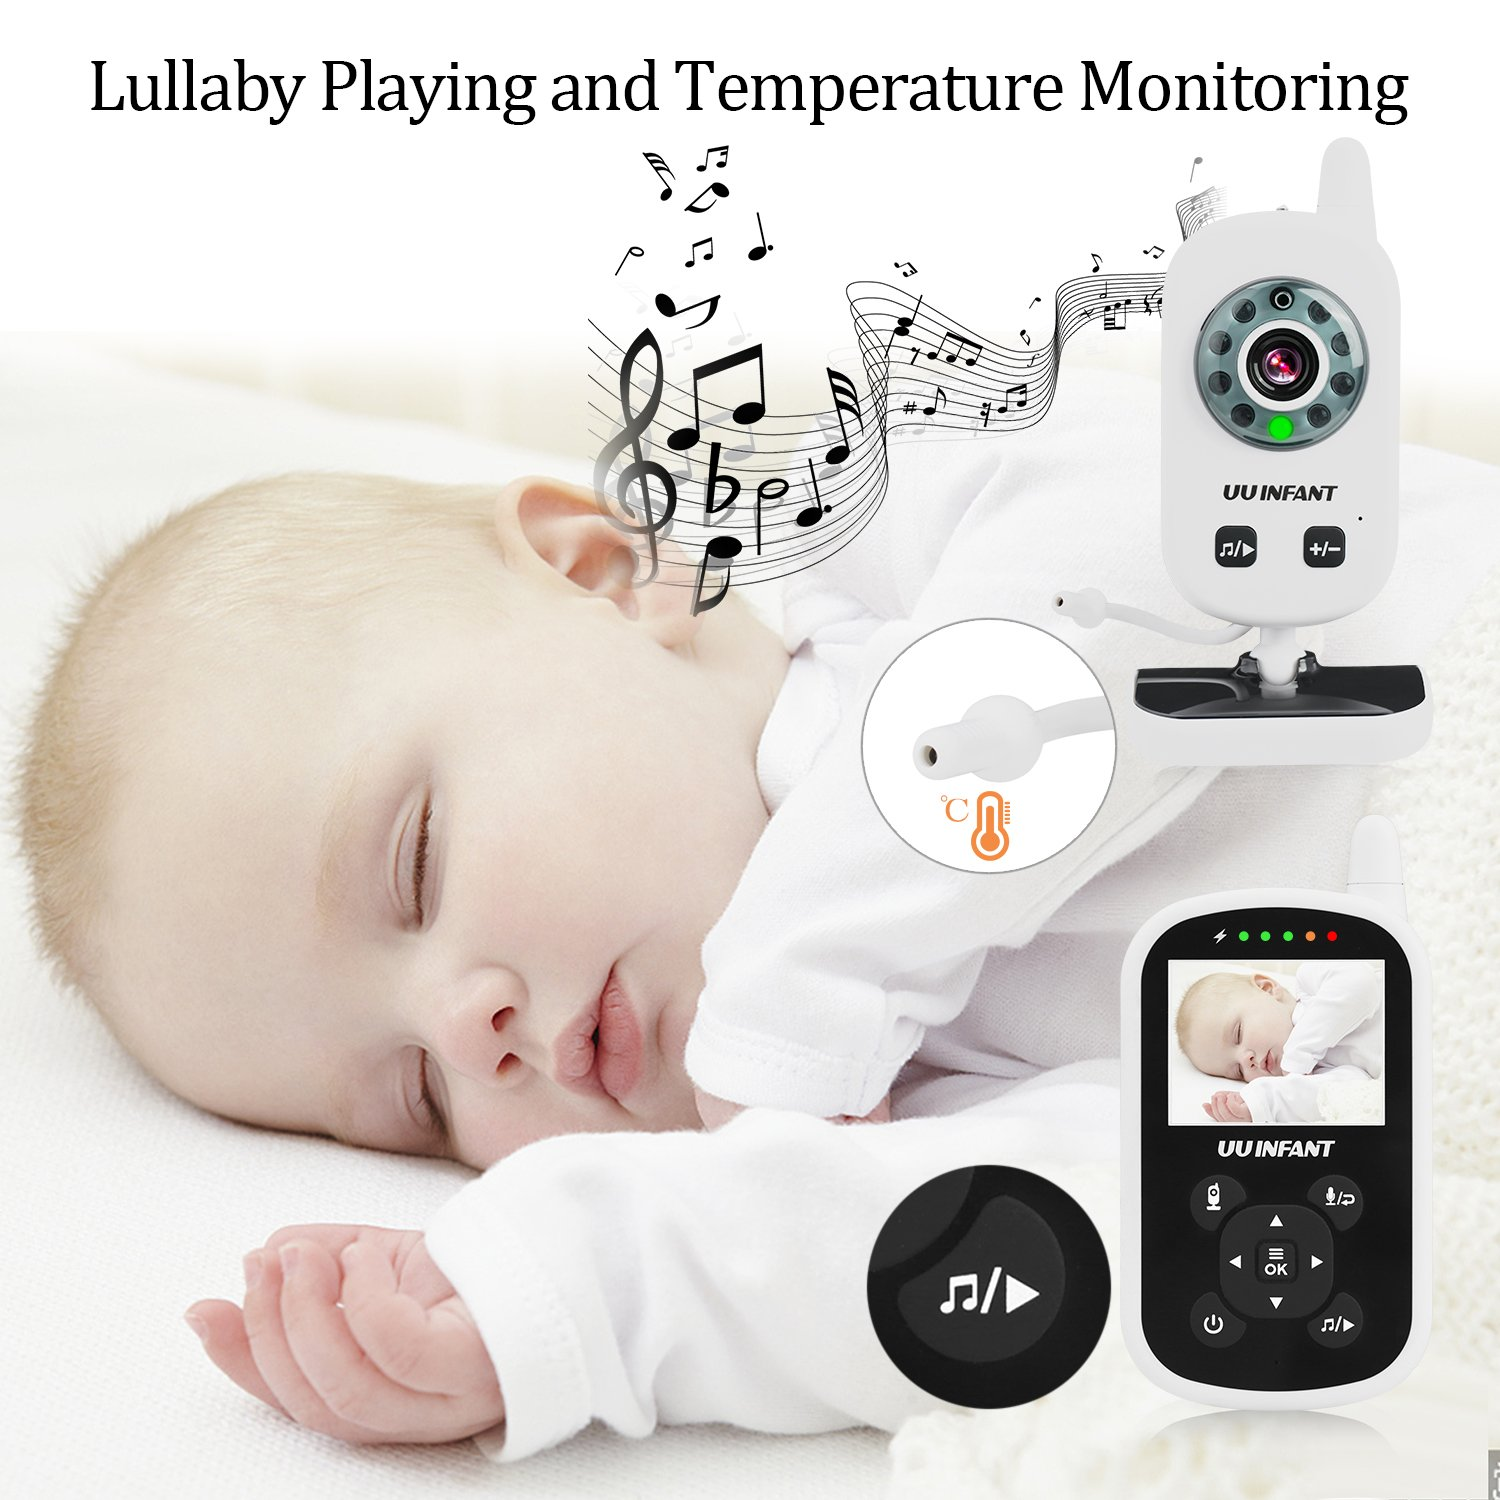 Baby Monitor, Video Baby Monitor with Camera- Wireless Video Monitor for Baby Safety- with Infrared Night Vision/Two Way Talkback/Temperature Monitor/Lullaby-Play (White) by UU Infant (Image #7)